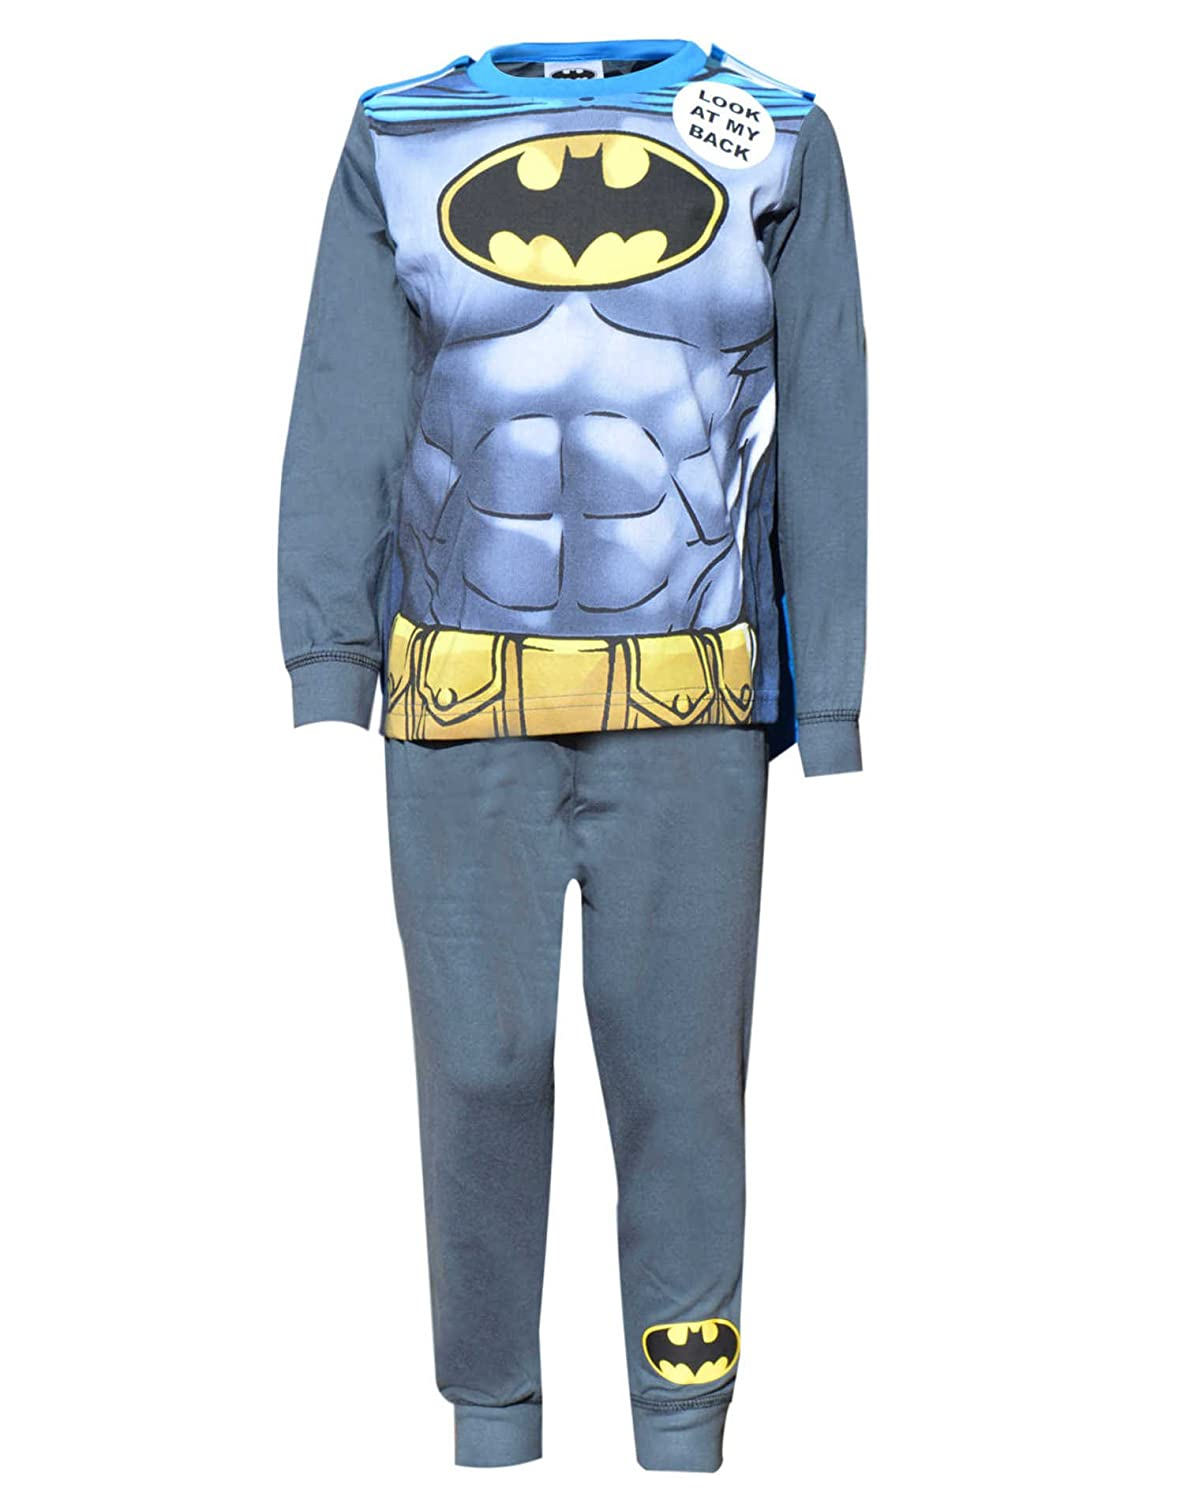 Batman Boys Novelty Pajama with Cape